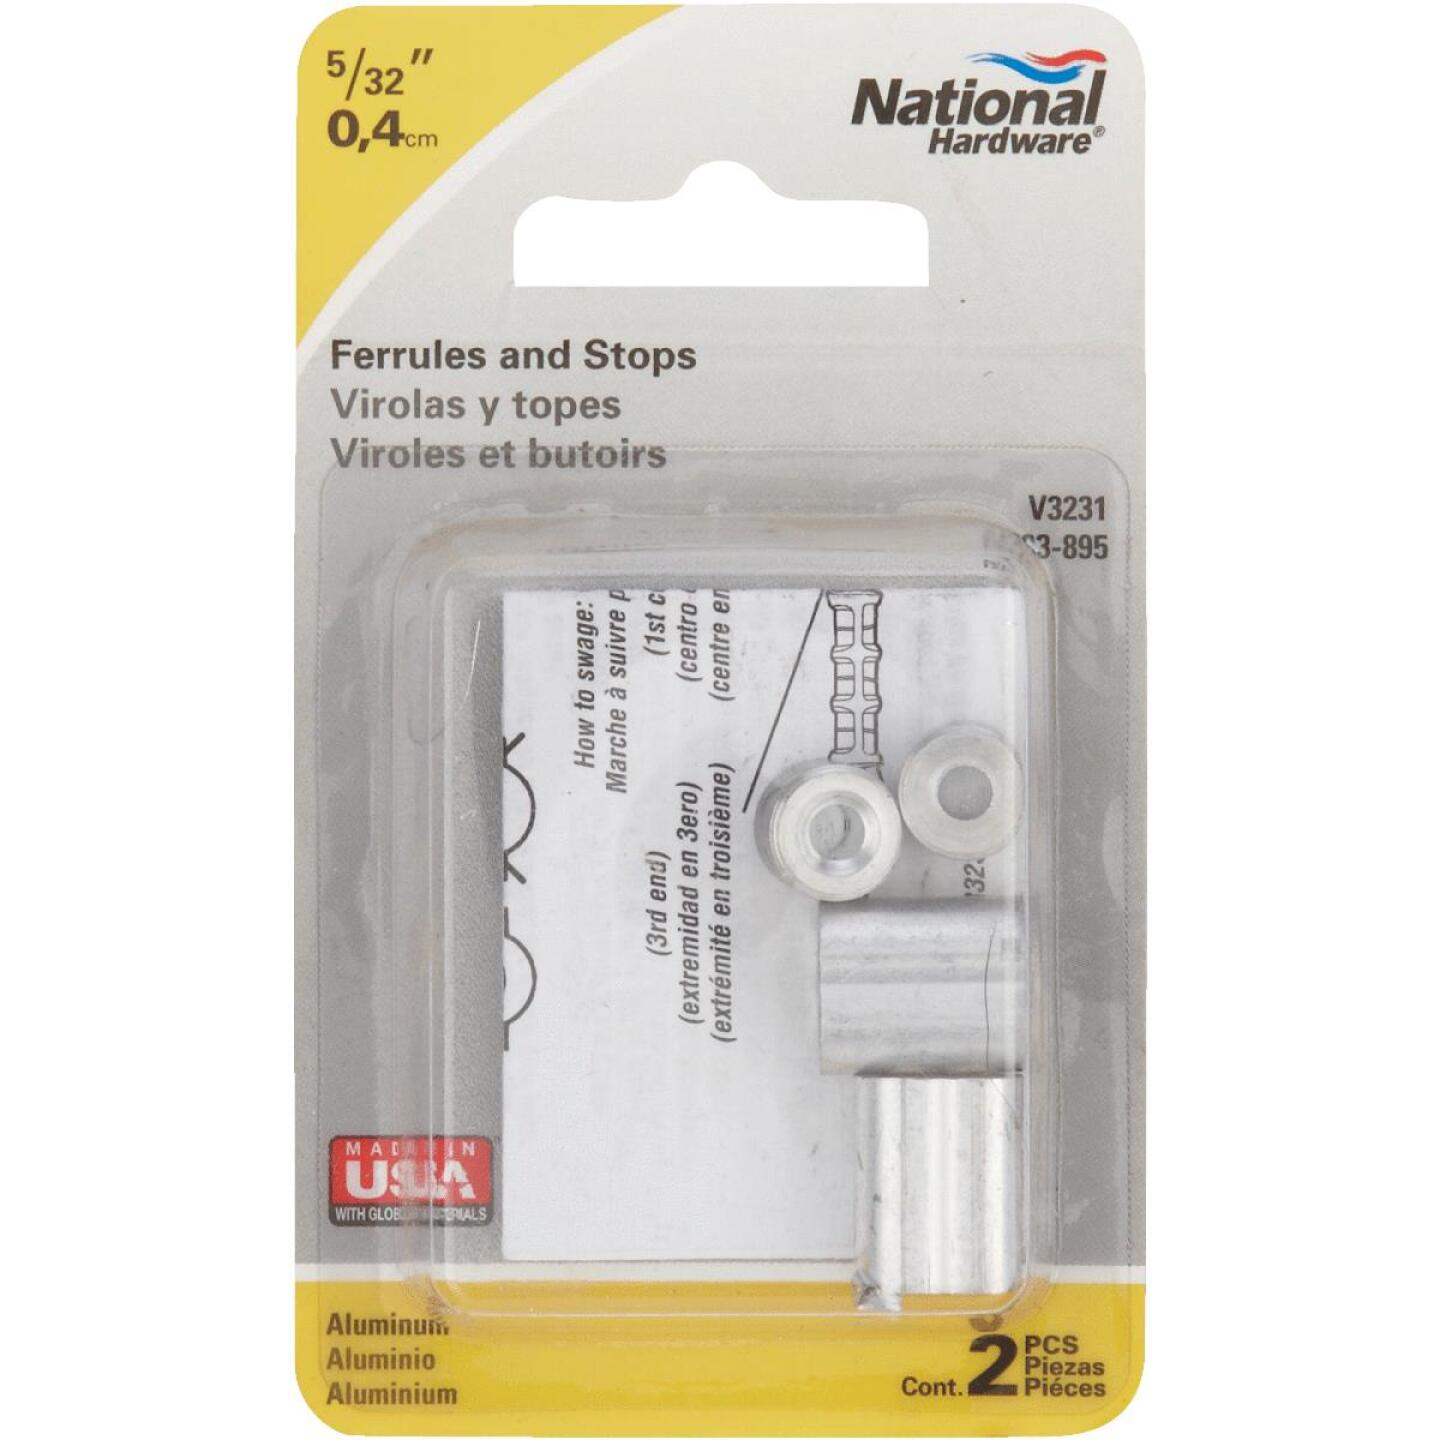 National 5/32 In. Aluminum Garage Door Ferrule & Stop Kit Image 2